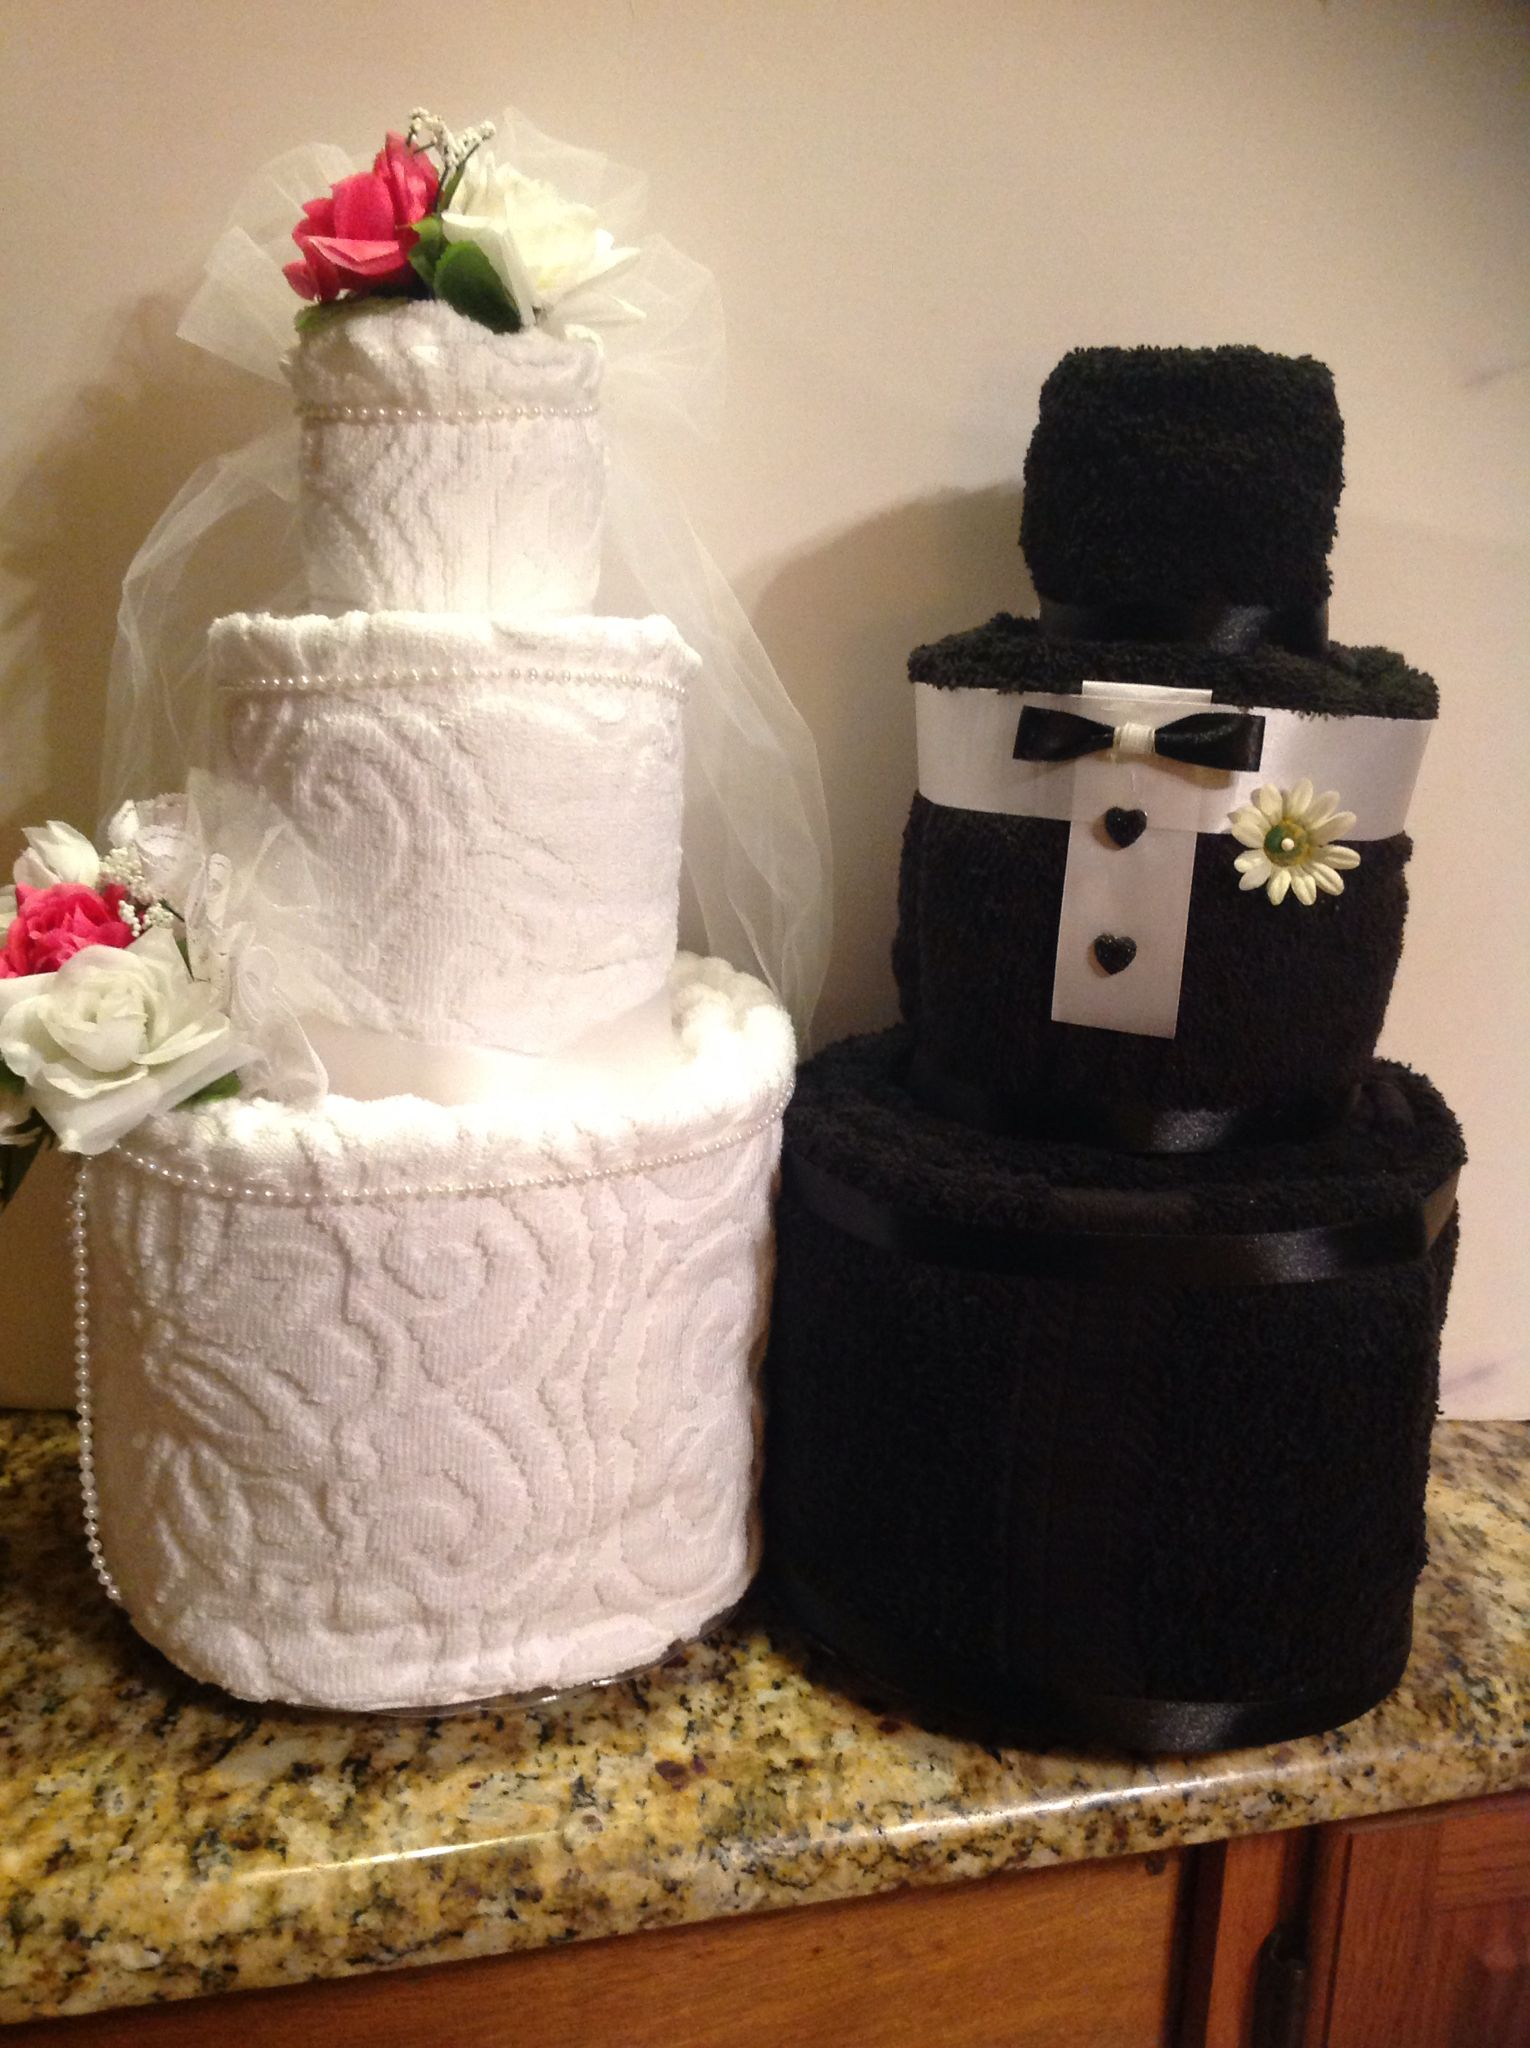 Wedding towel cake great centerpiece for any bridal shower